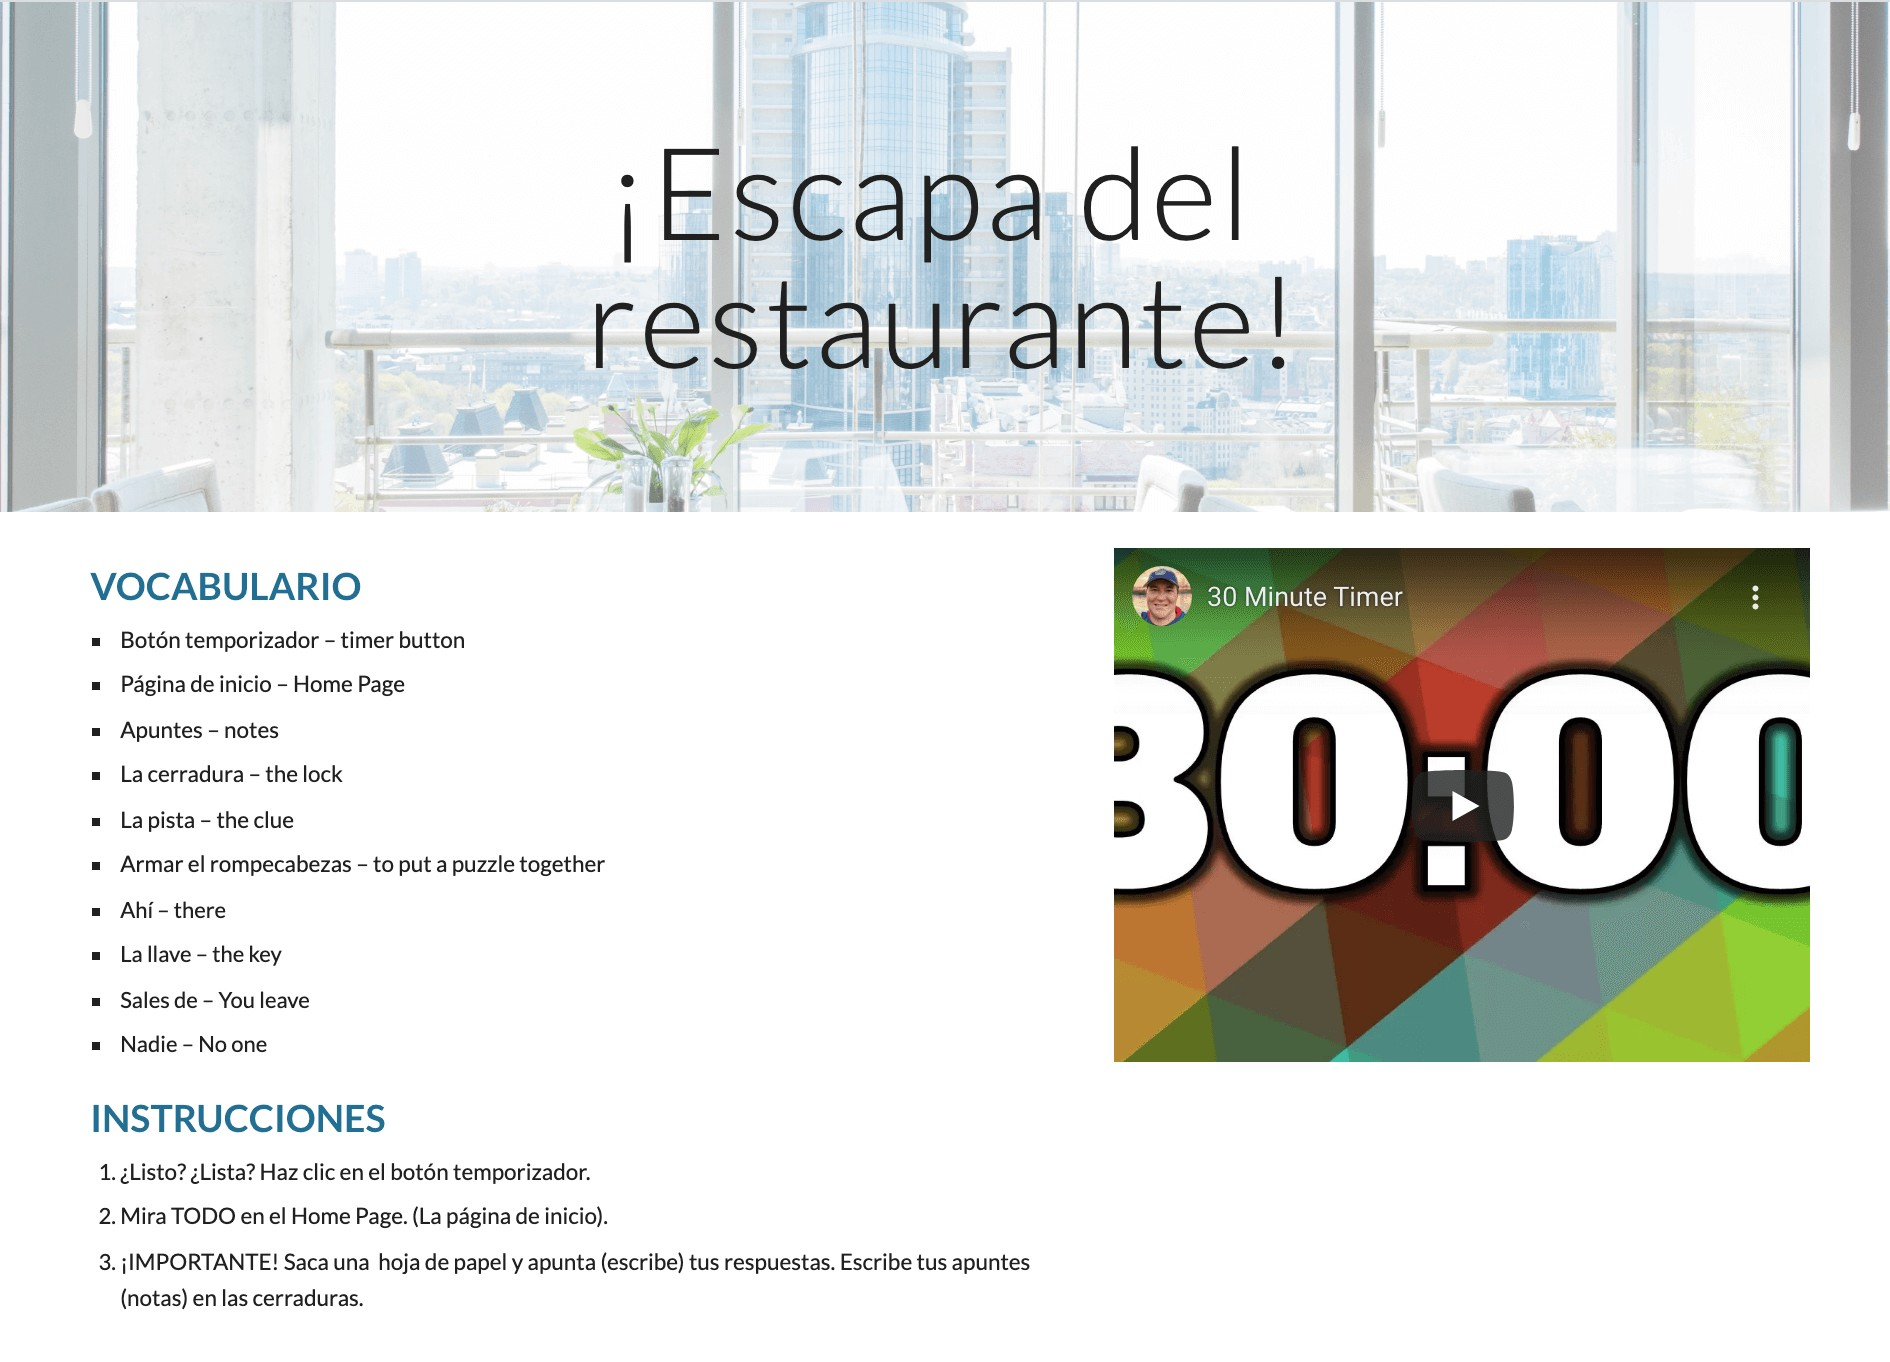 La ropa Spanish Food Vocabulary Digital Escape room